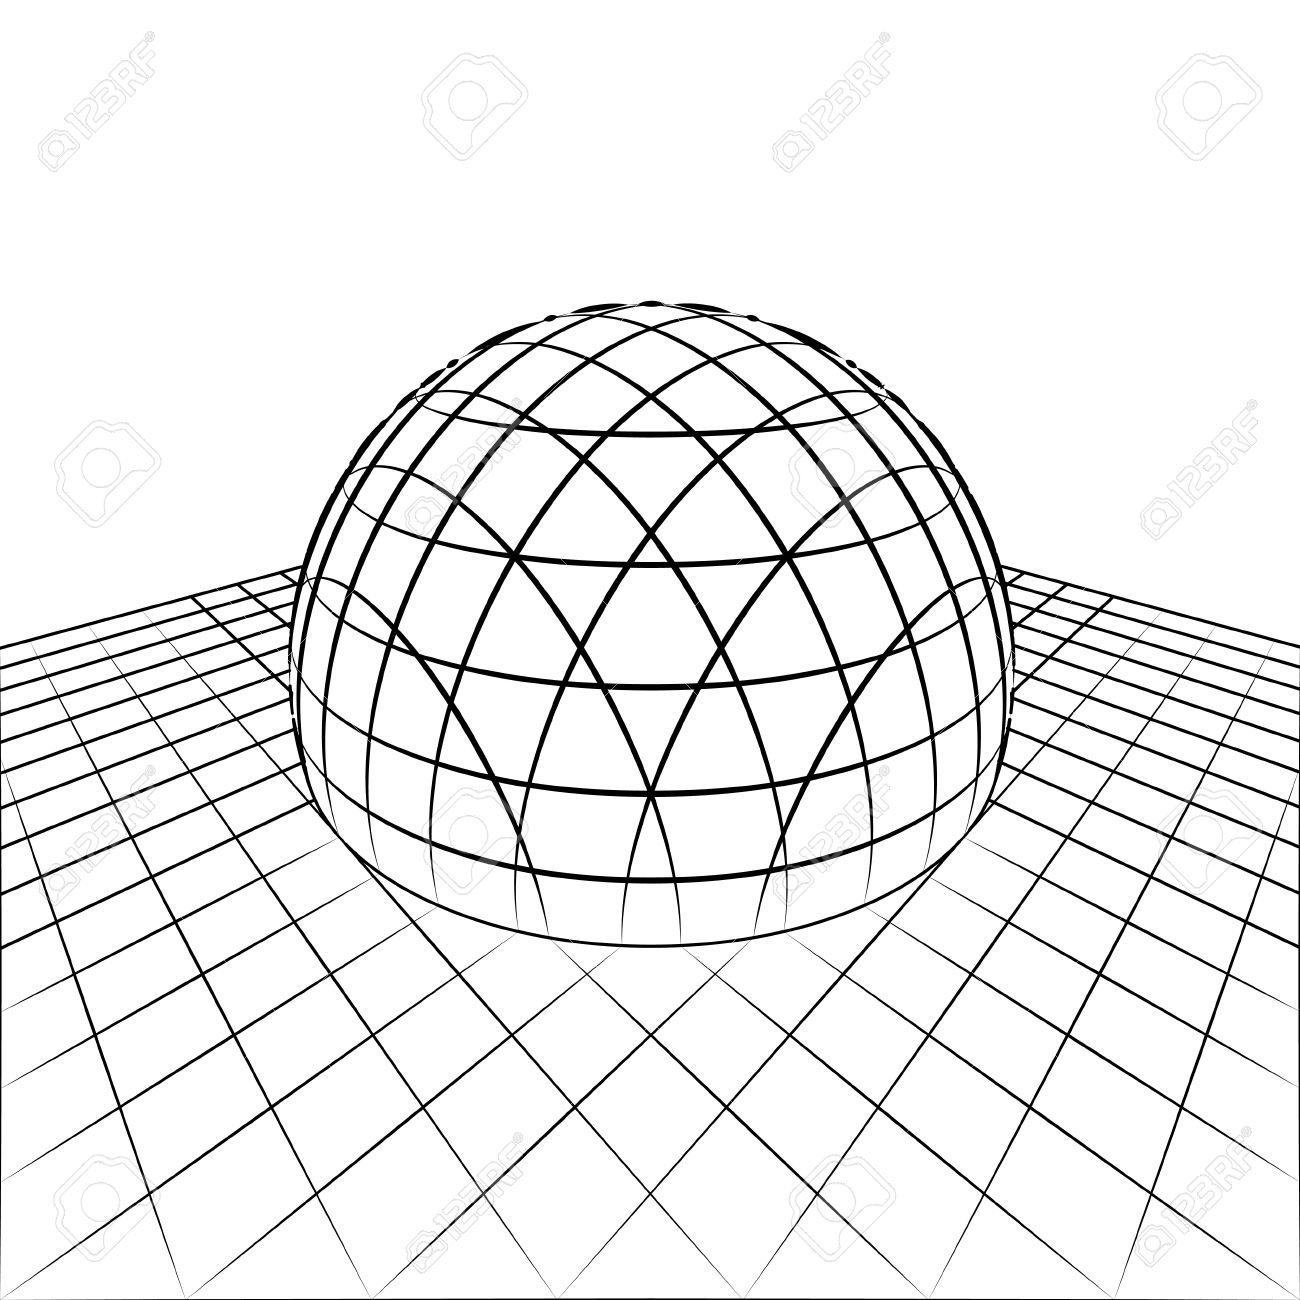 1300x1300 Half Sphere In Grid Line Perspective Drawing Illustration Royalty